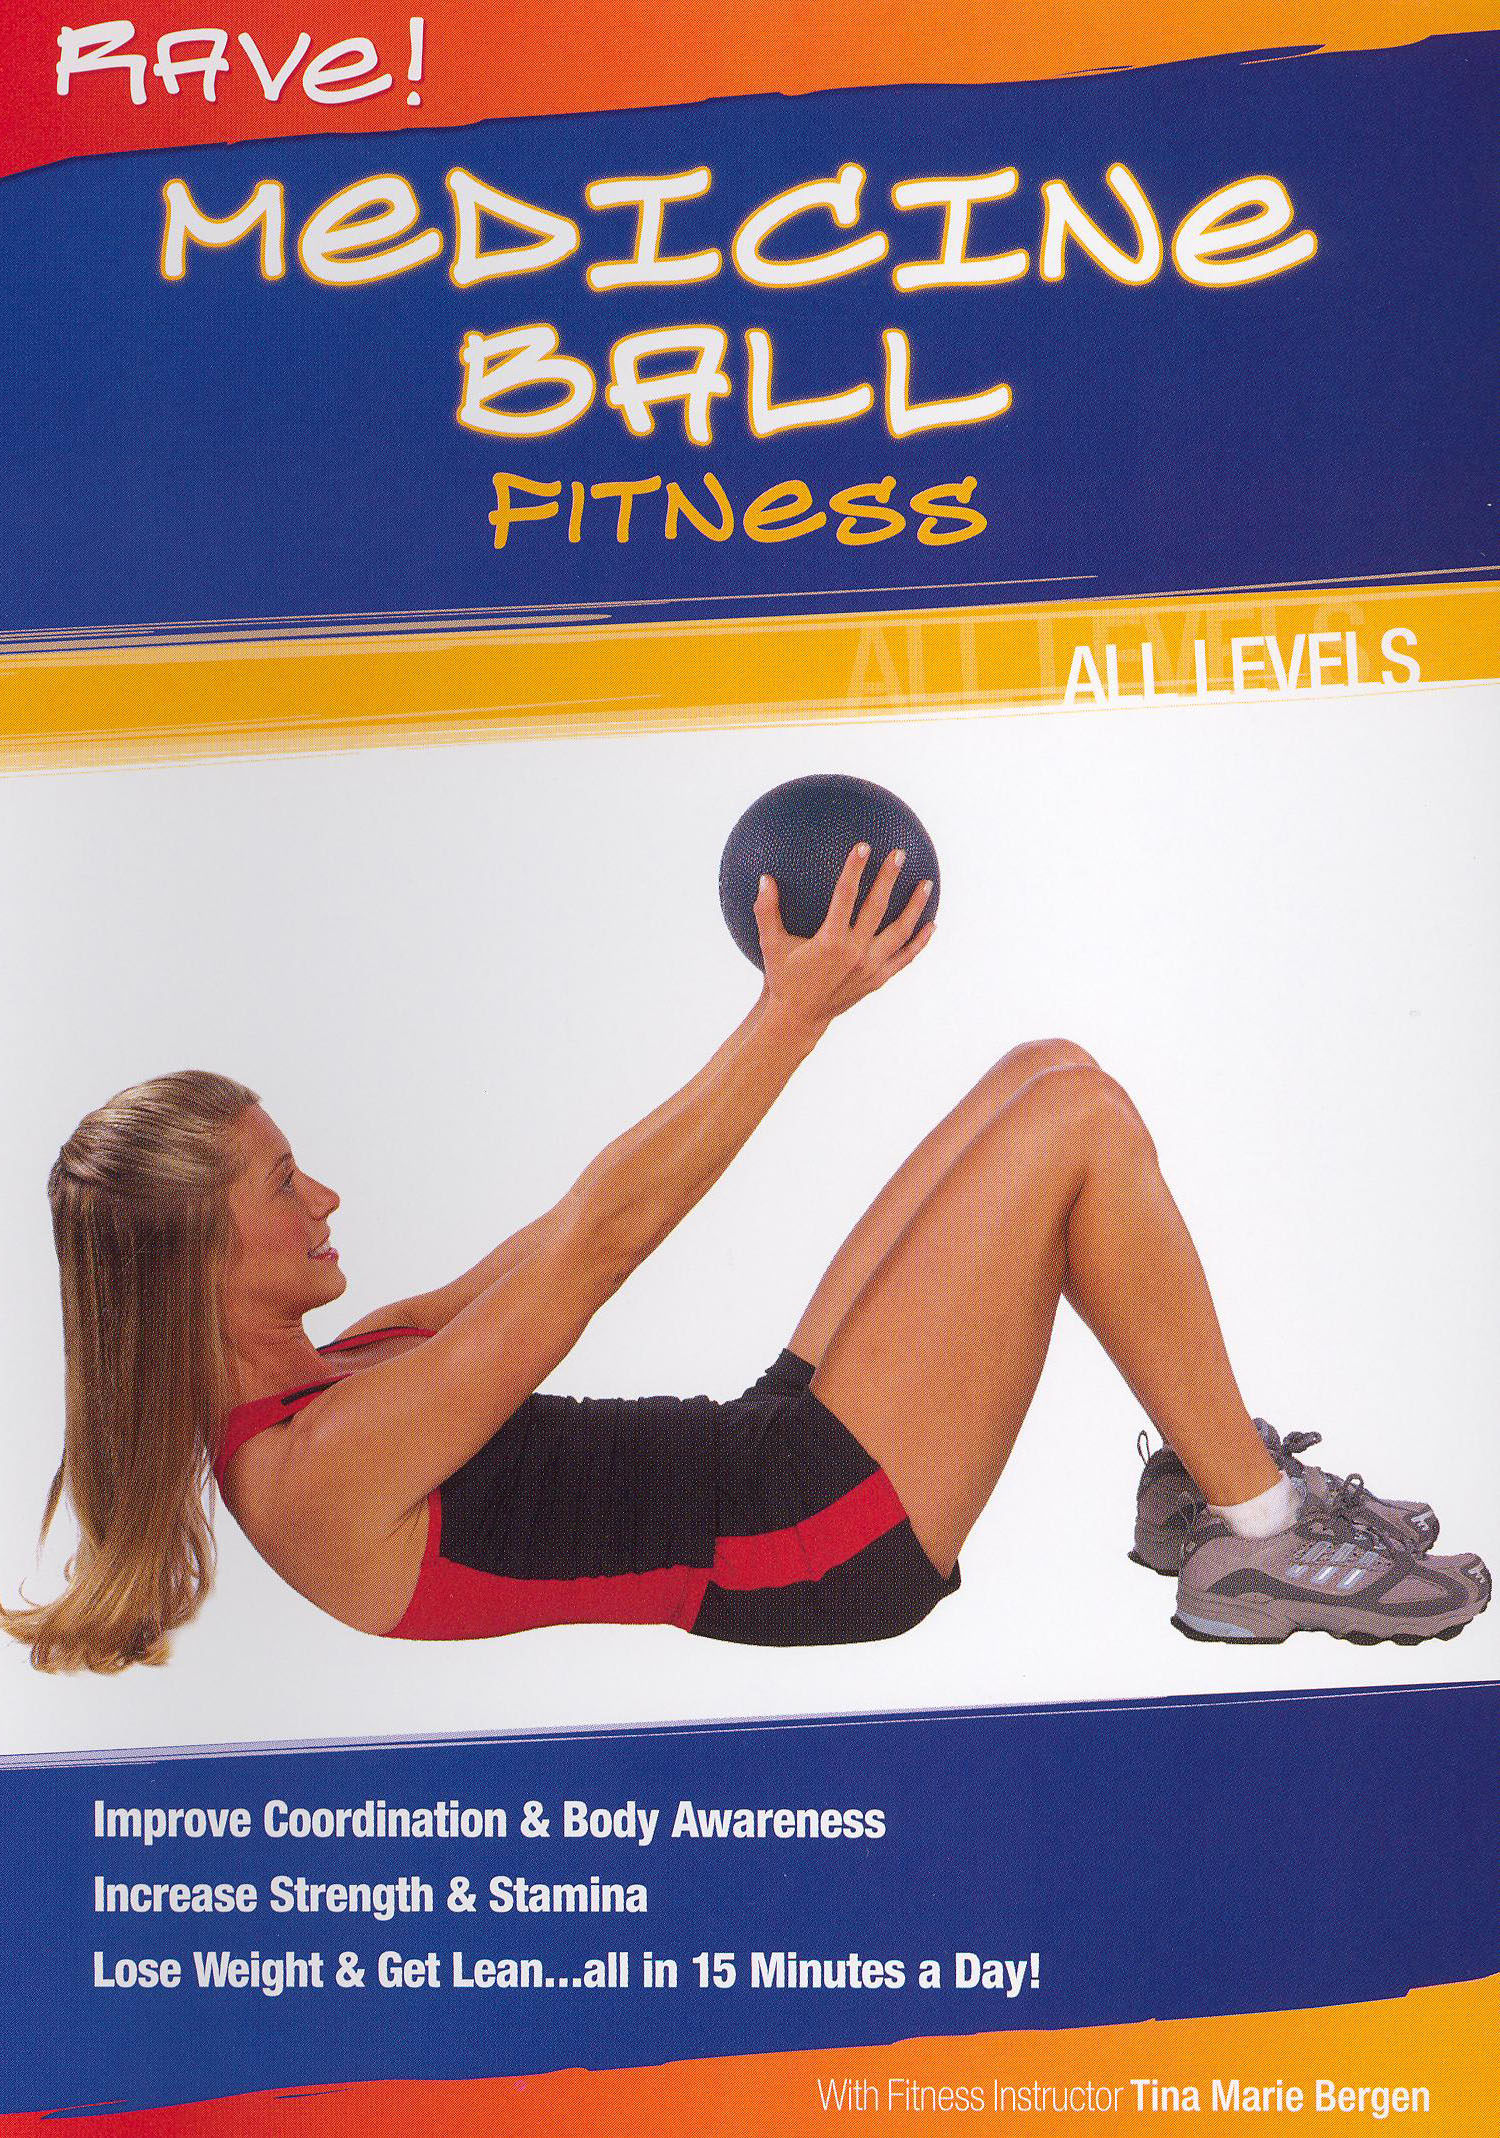 Rave! Medicine Ball Fitness